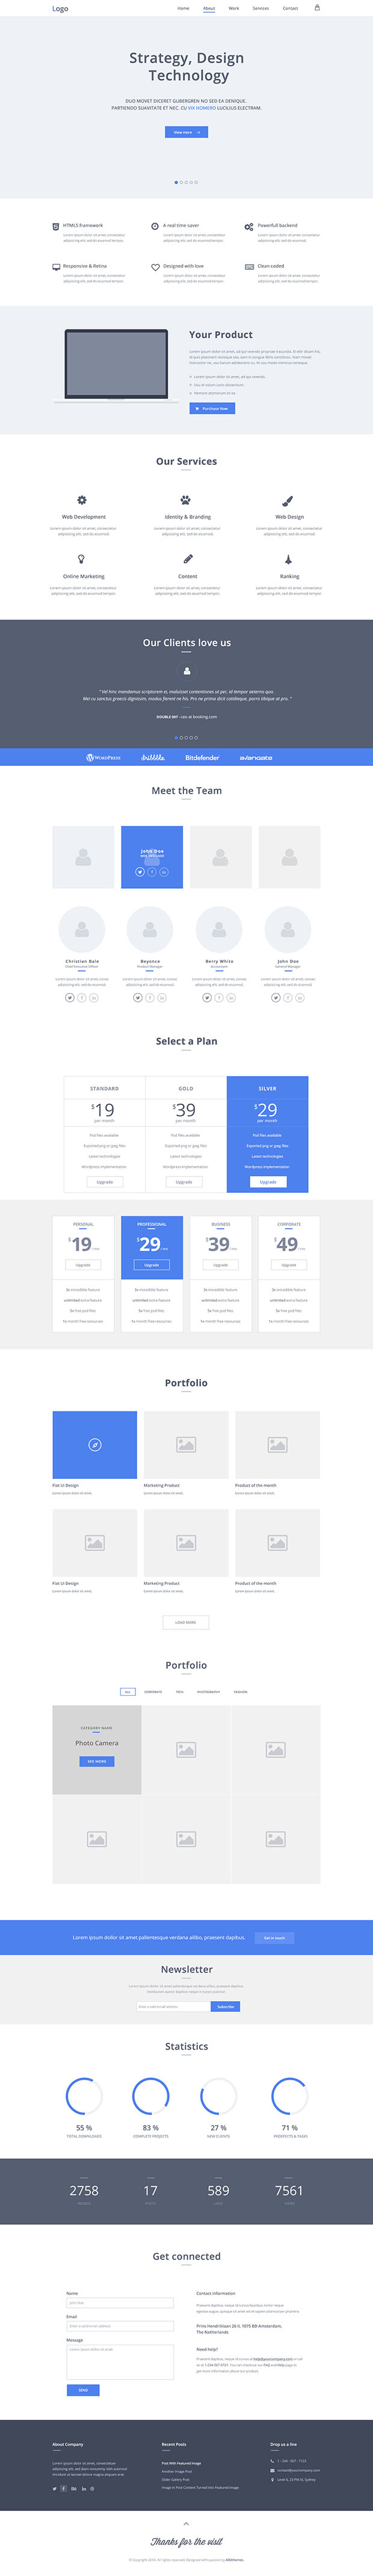 One-page-Wireframe